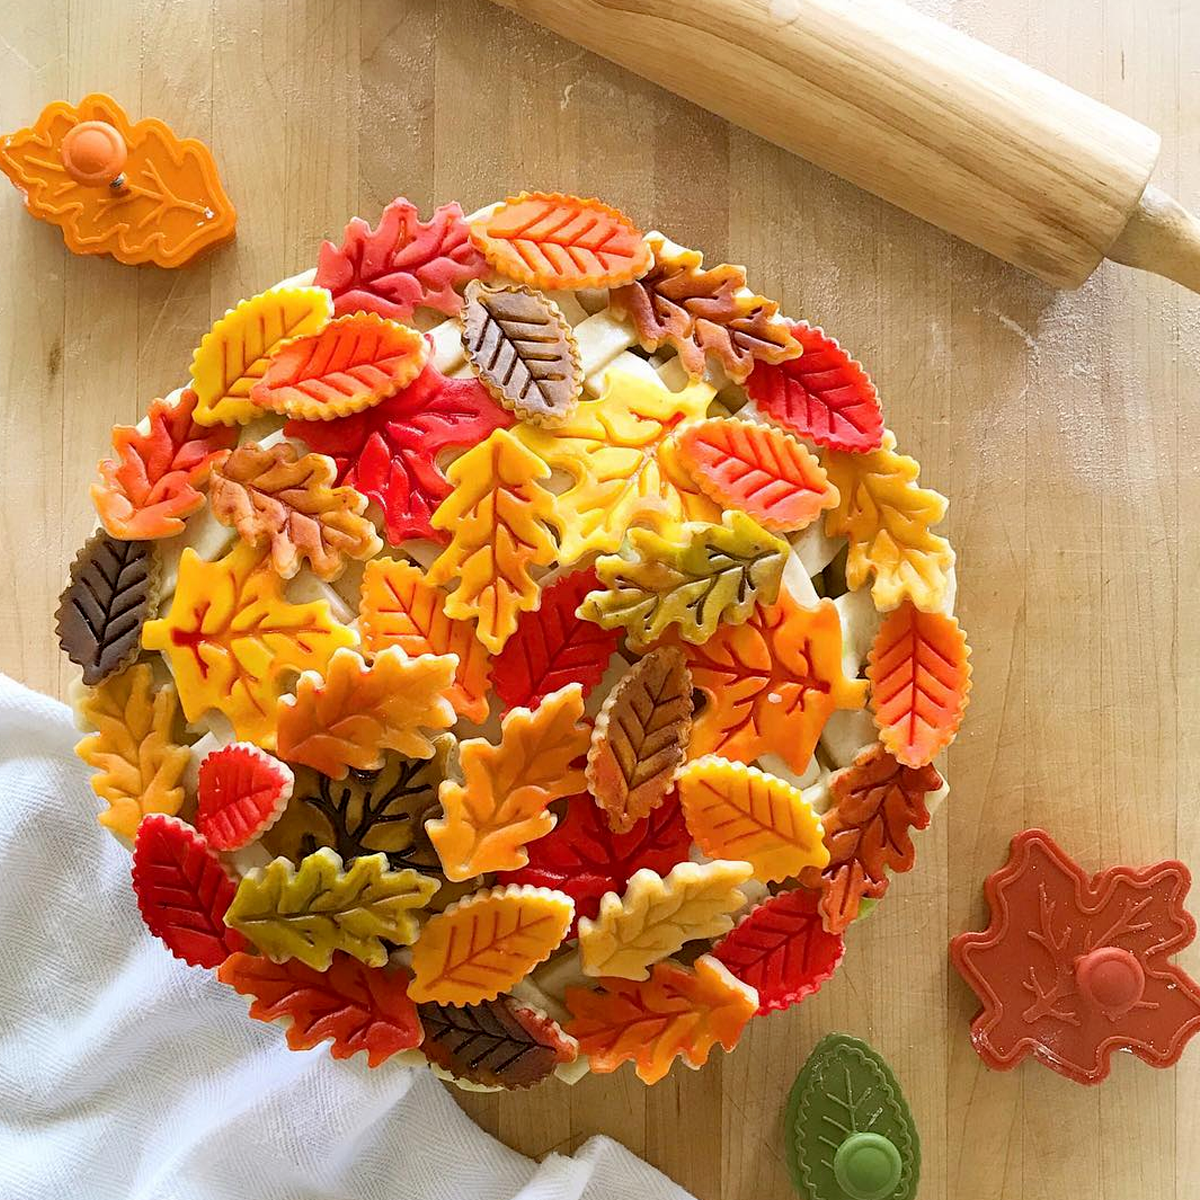 10 Fall Pie Crust Designs for all your fall pie baking | via pies before guys